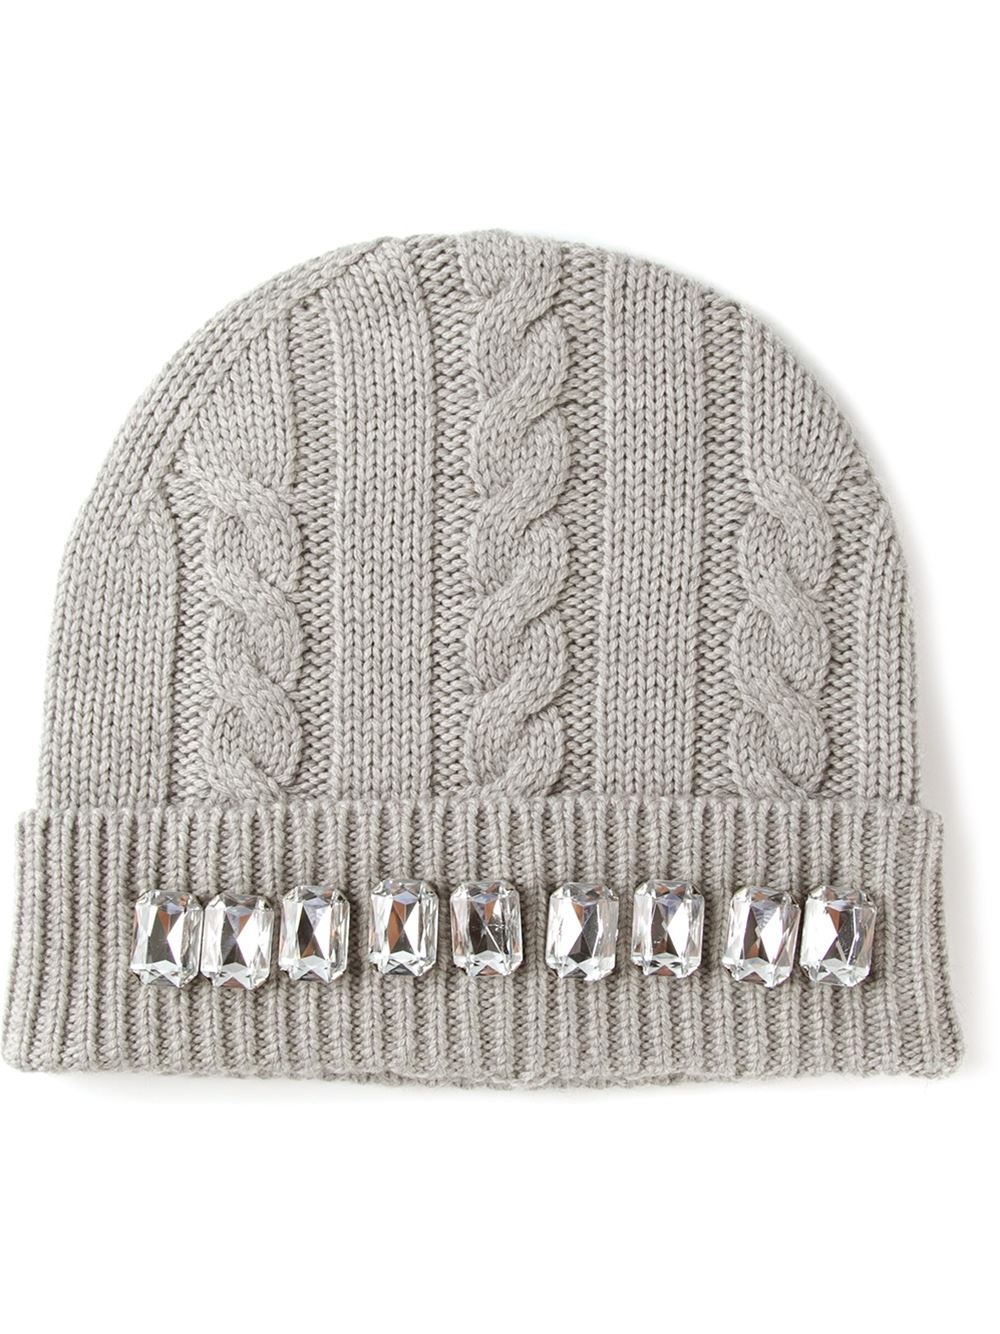 c8c25f48a53 Lyst - Markus Lupfer Embellished Cable Knit Beanie in Gray